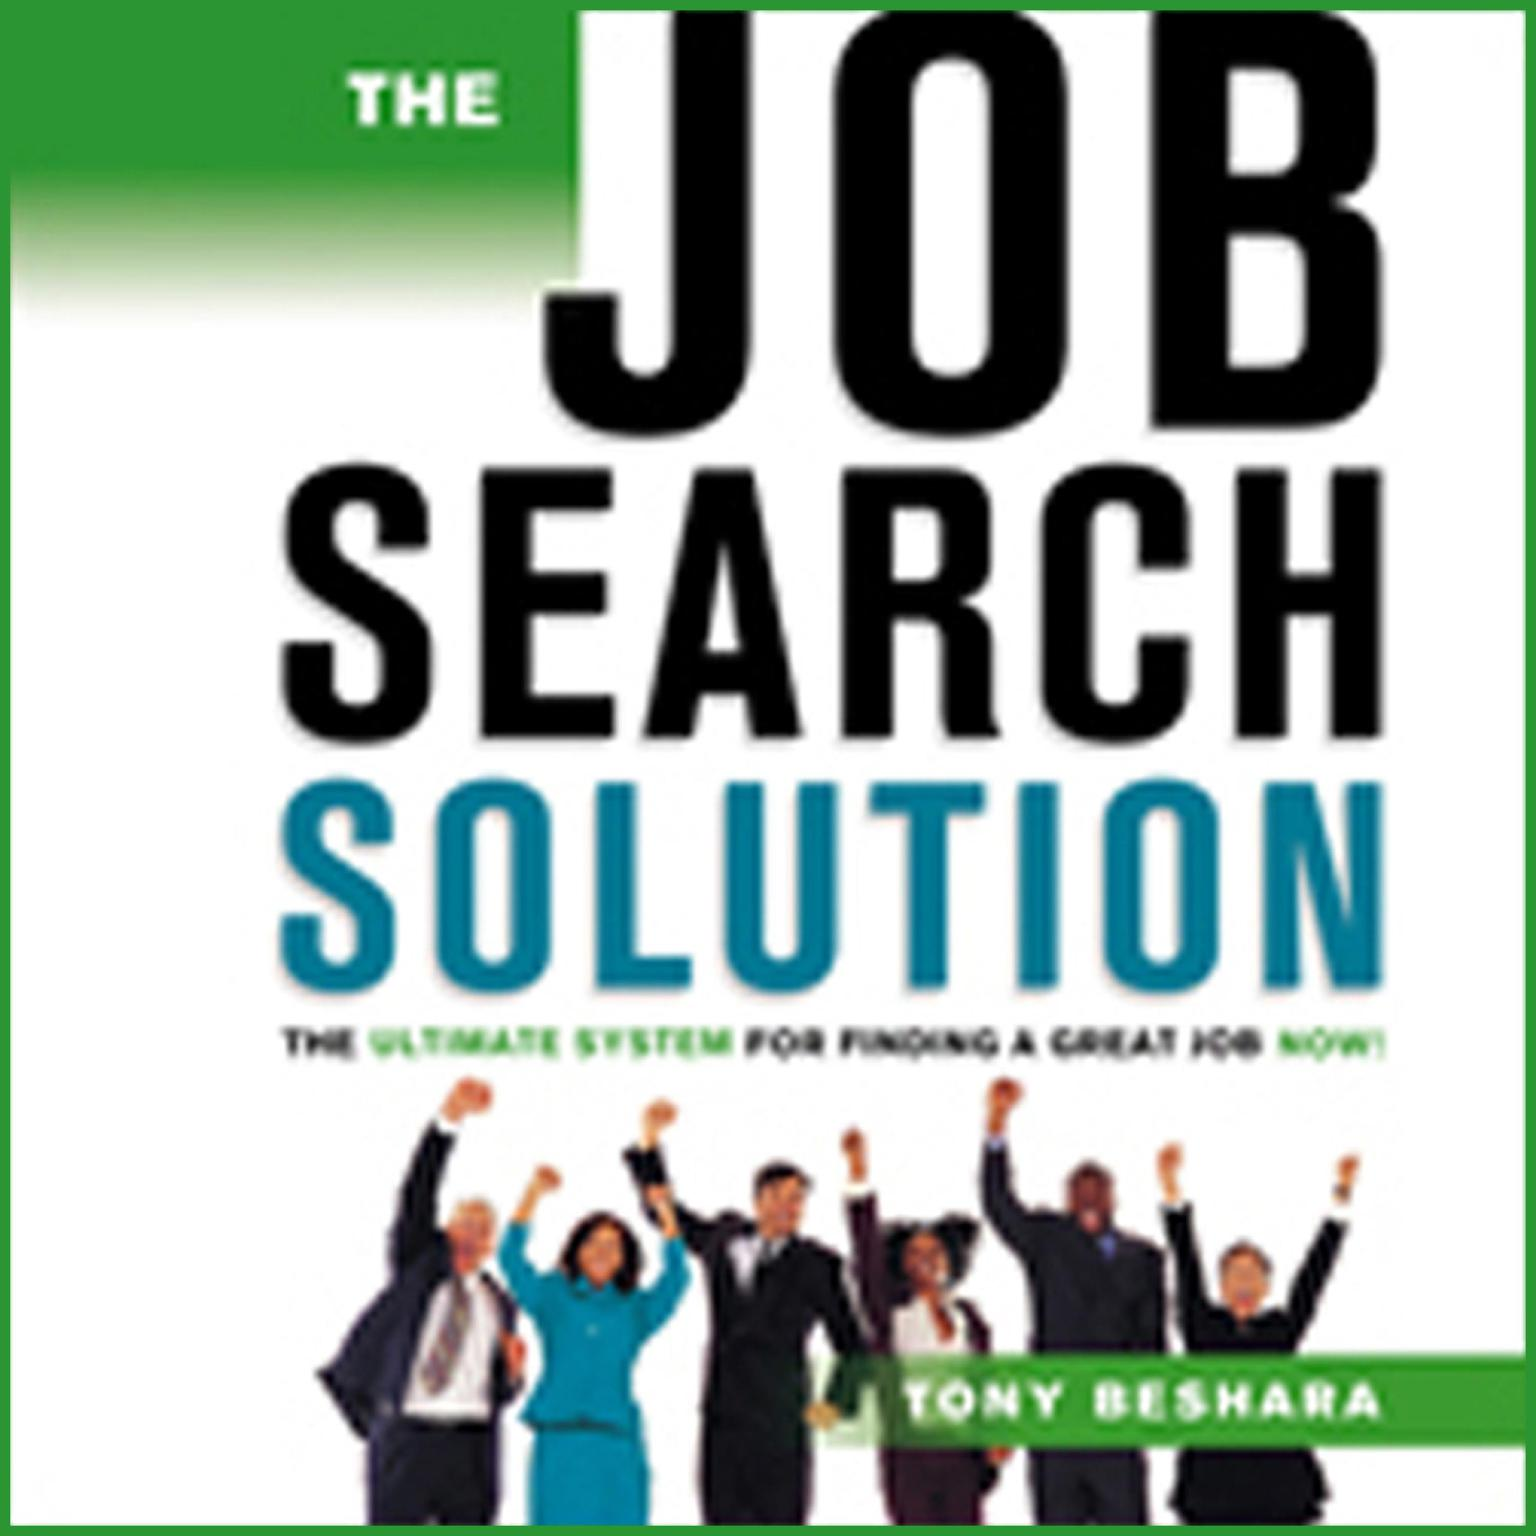 Printable The Job Search Solution: The Ultimate System for Finding a Great Job Now! Audiobook Cover Art